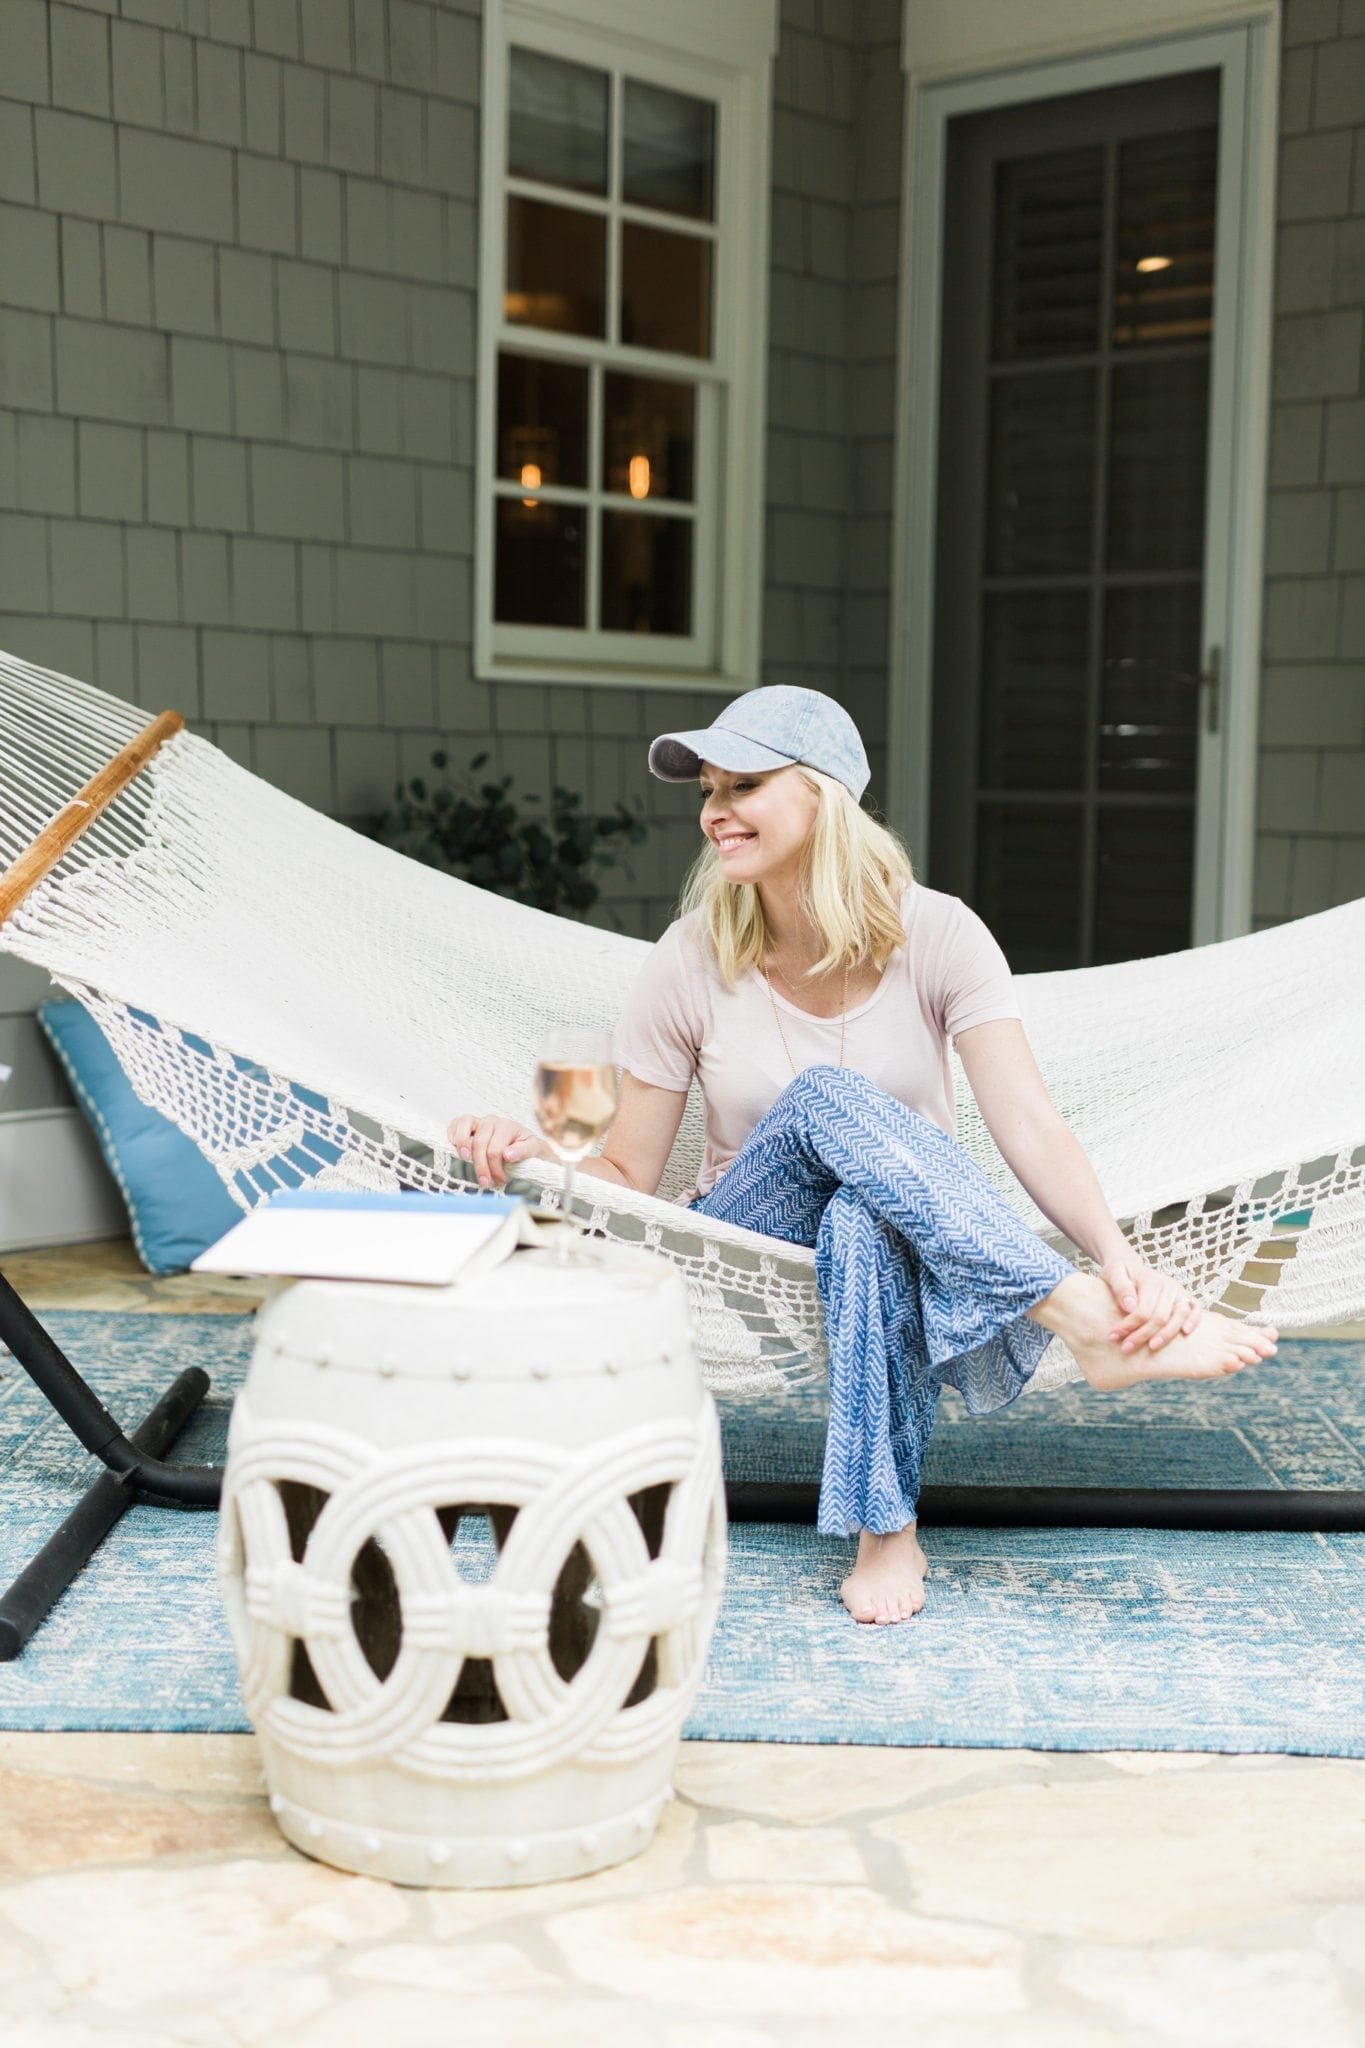 Home blogger Kelly Page in outdoor pretty hammock with garden stool.